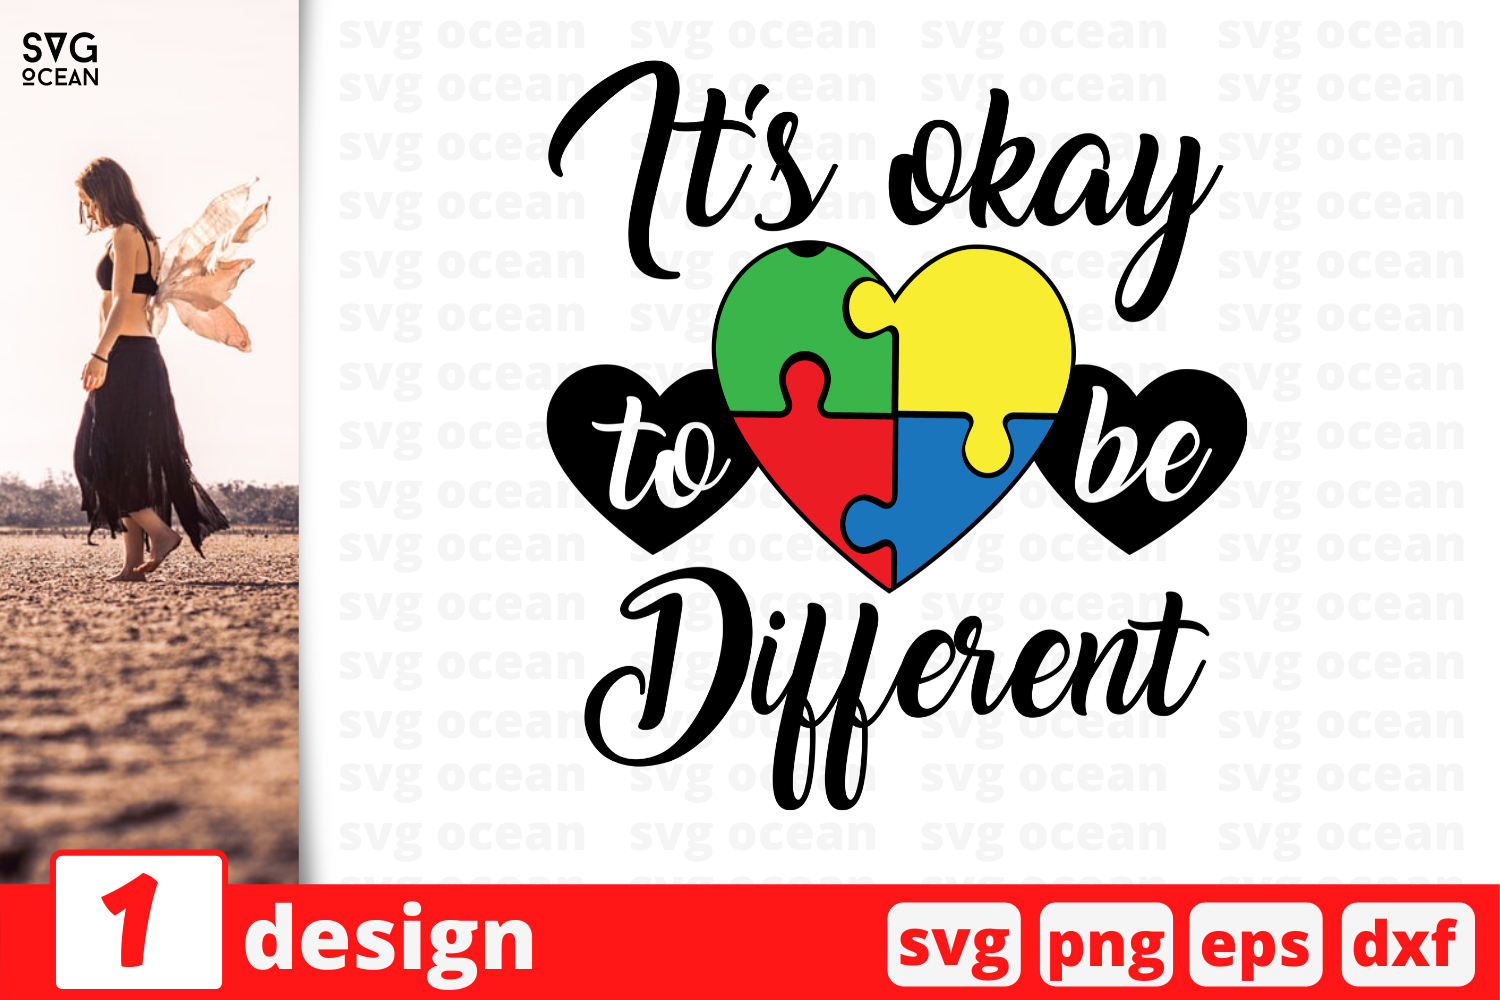 Download Free It S Okay To Be Different Graphic By Svgocean Creative Fabrica for Cricut Explore, Silhouette and other cutting machines.